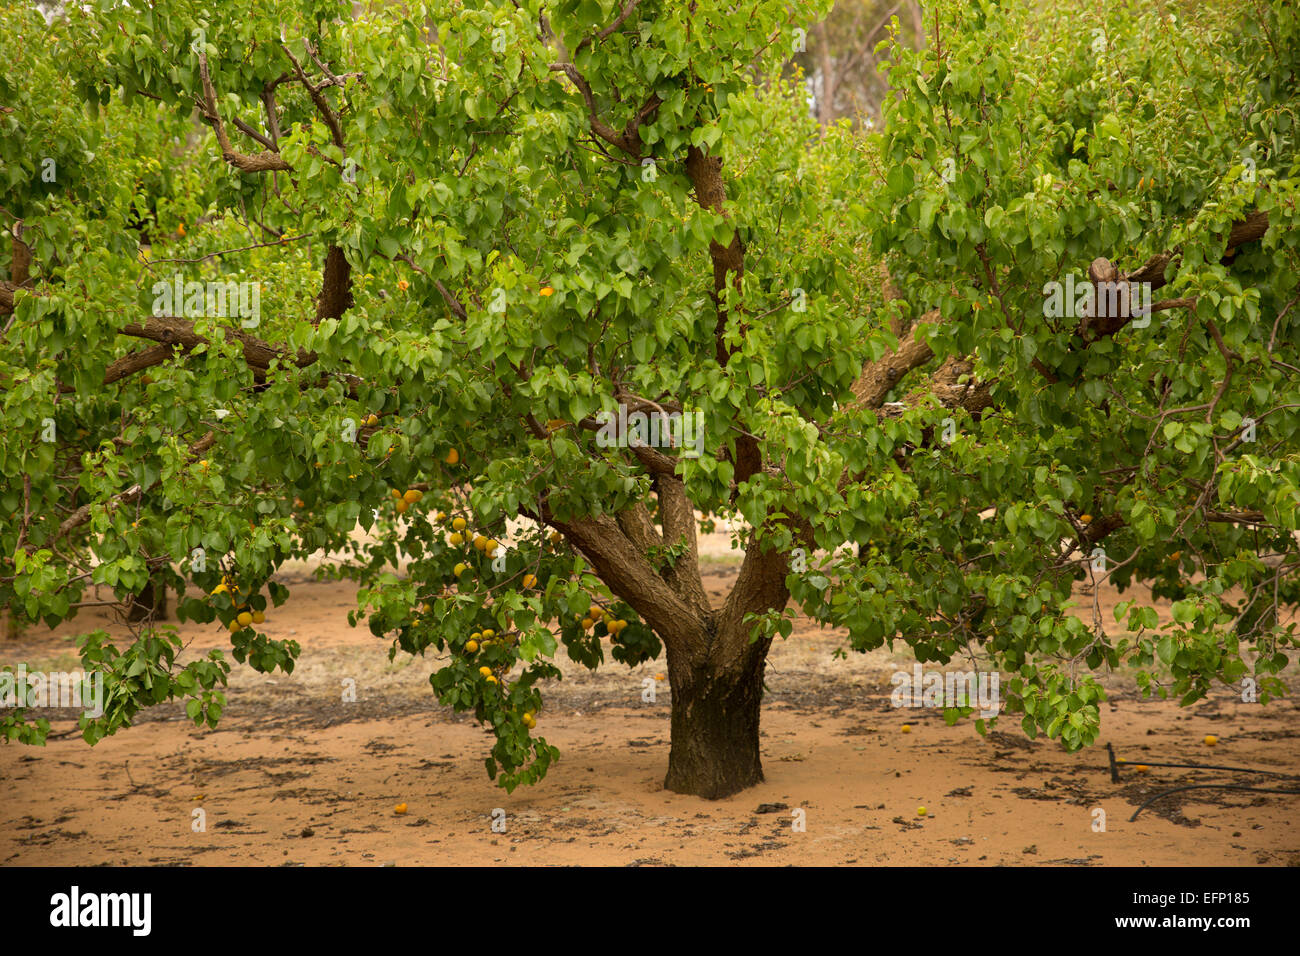 young apricot tree with ripe fruit - Stock Image